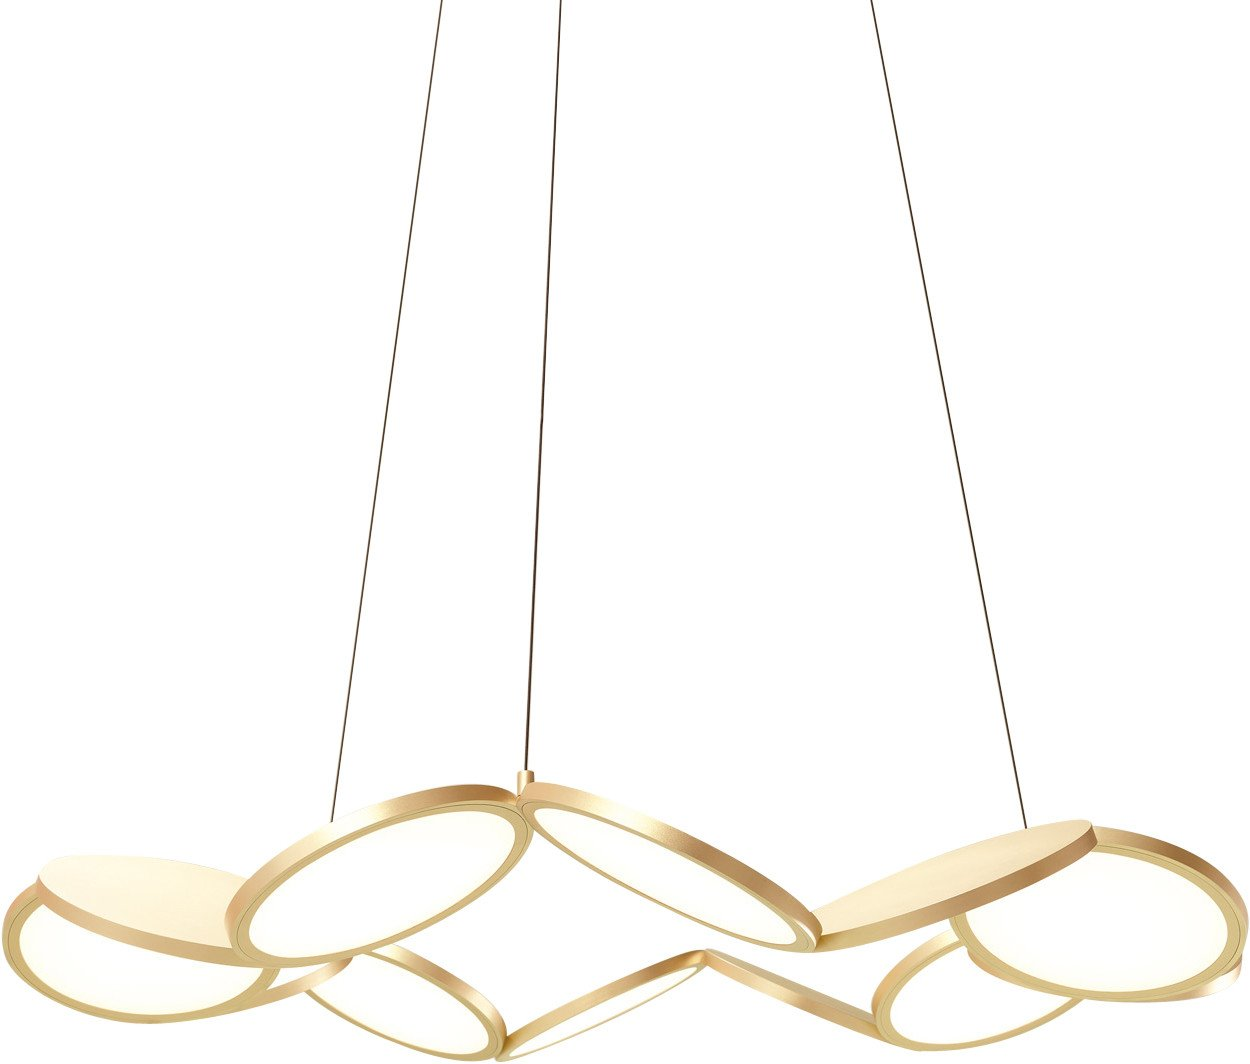 Chandelier Samara Lamp gold, Luum